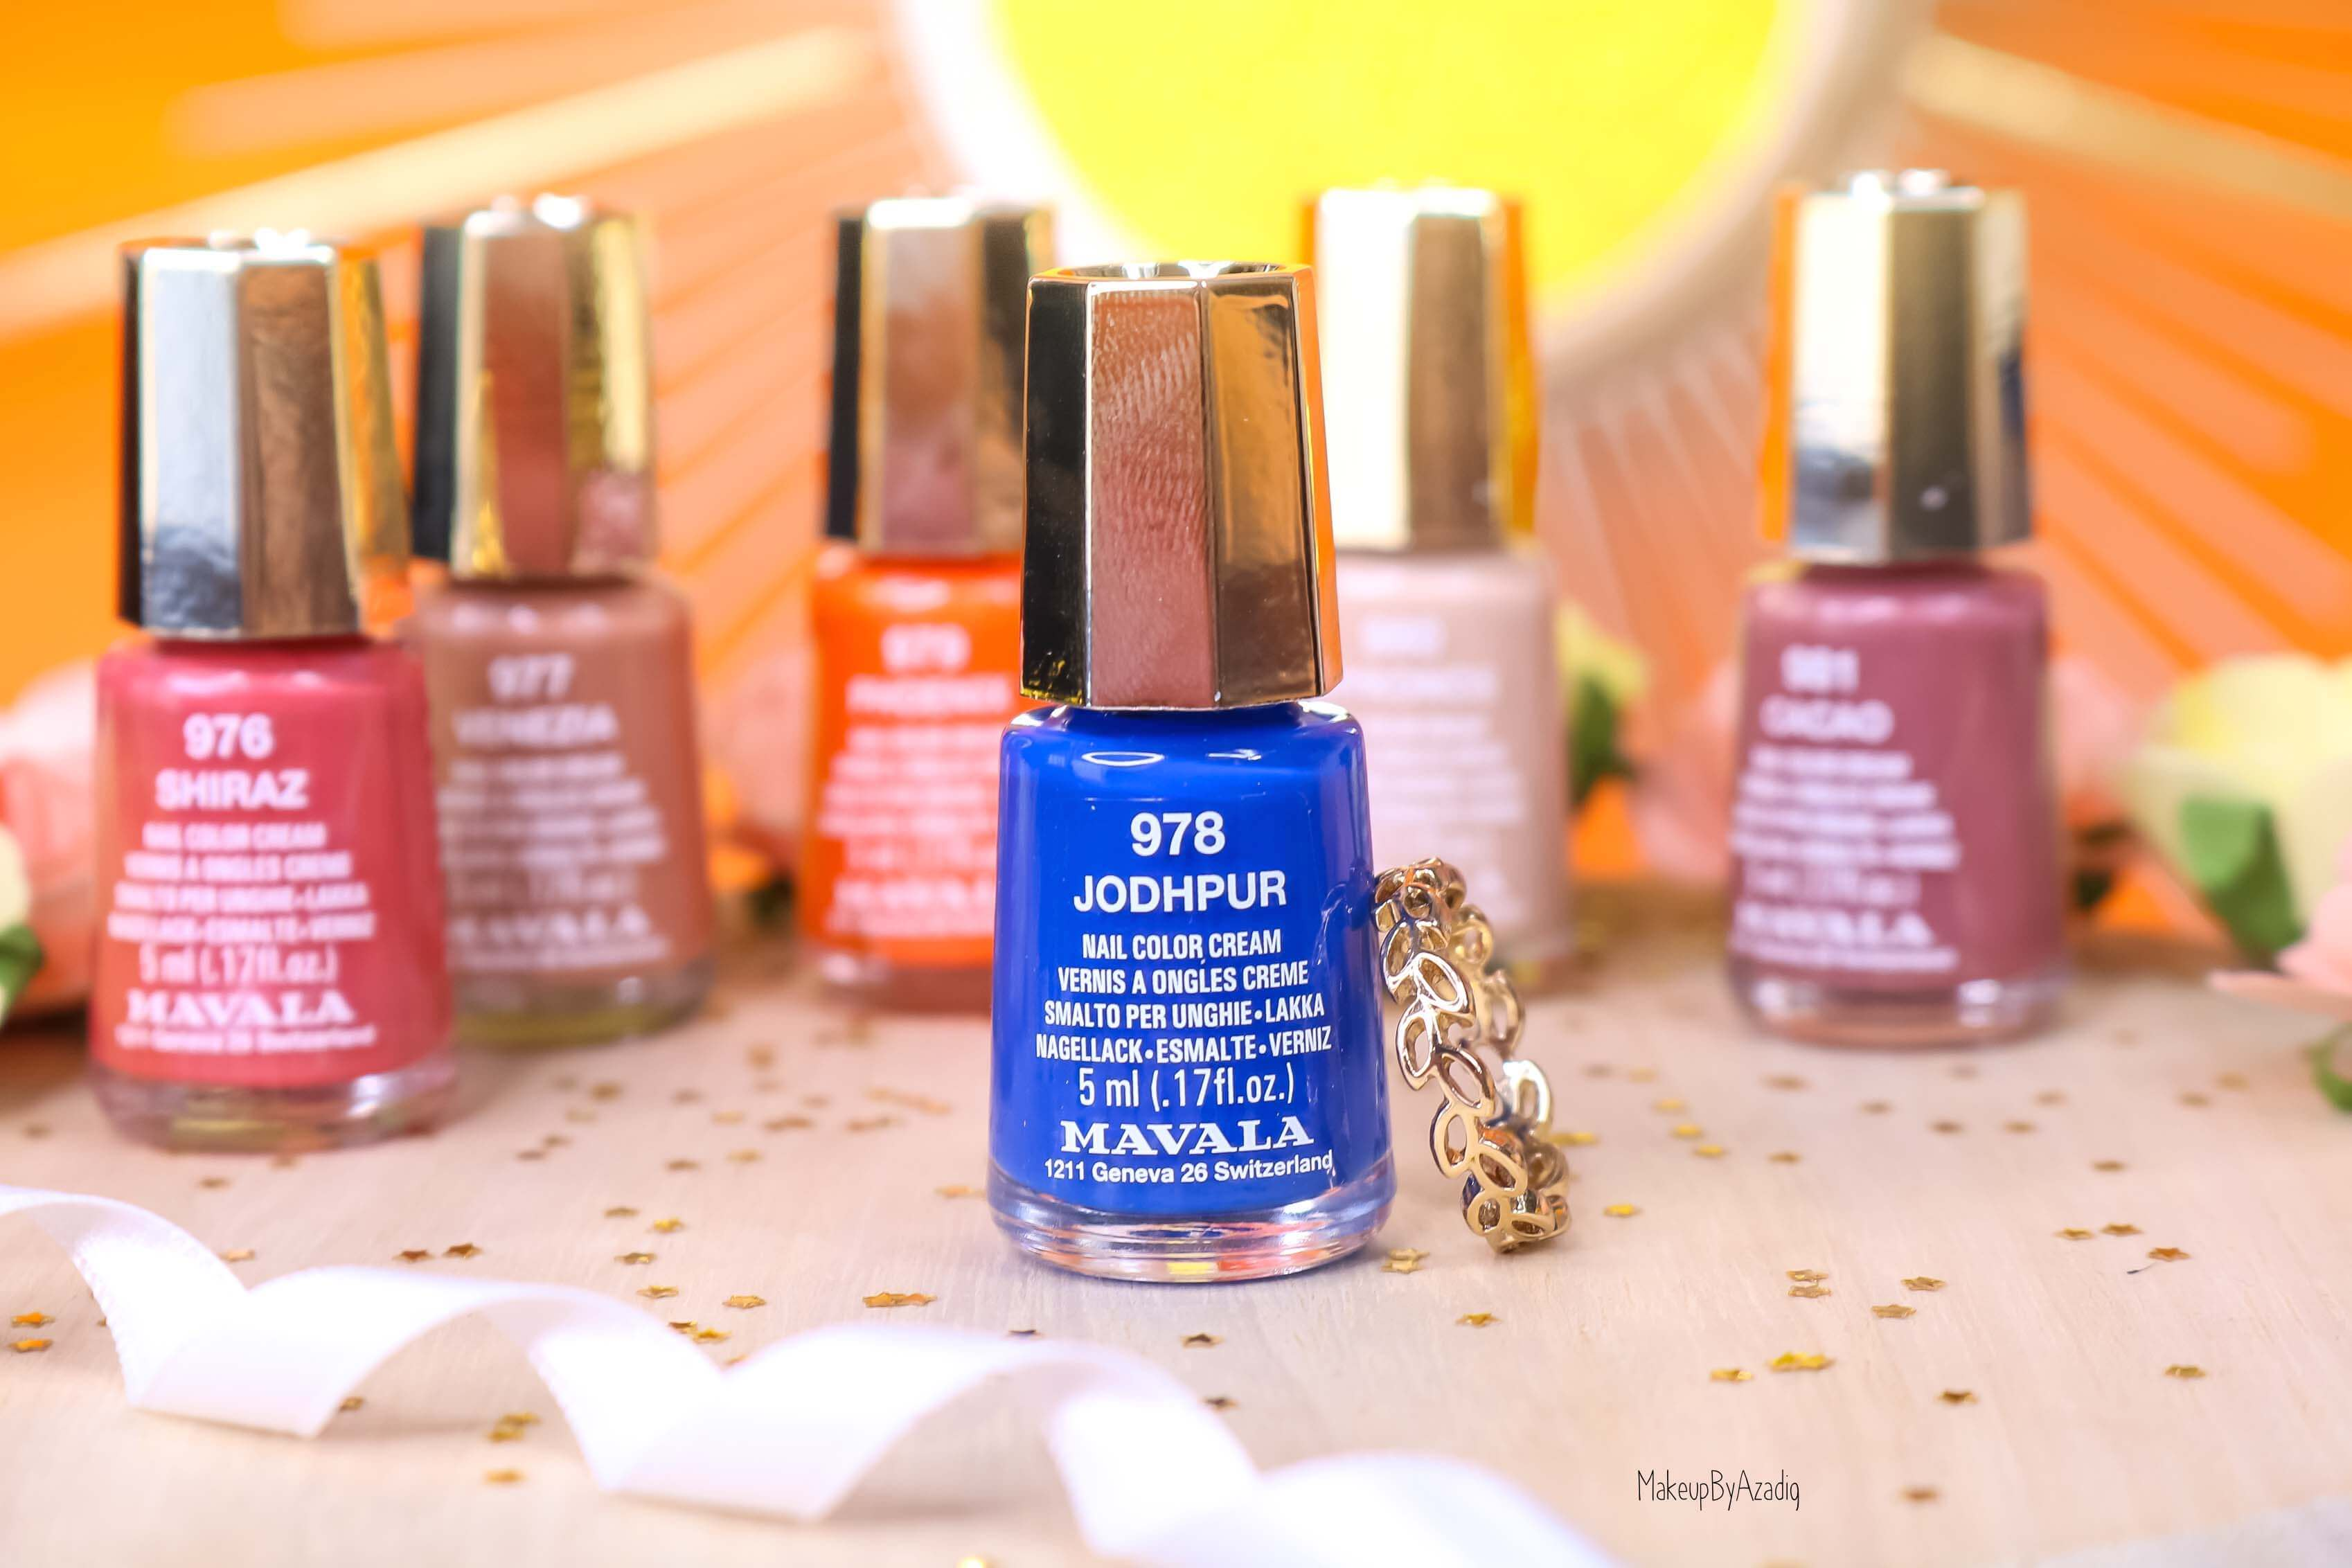 revue-collection-vernis-mavala-nails-solaris-printemps-bleu-orange-makeupbyazadig-swatch-avis-prix-johdpur